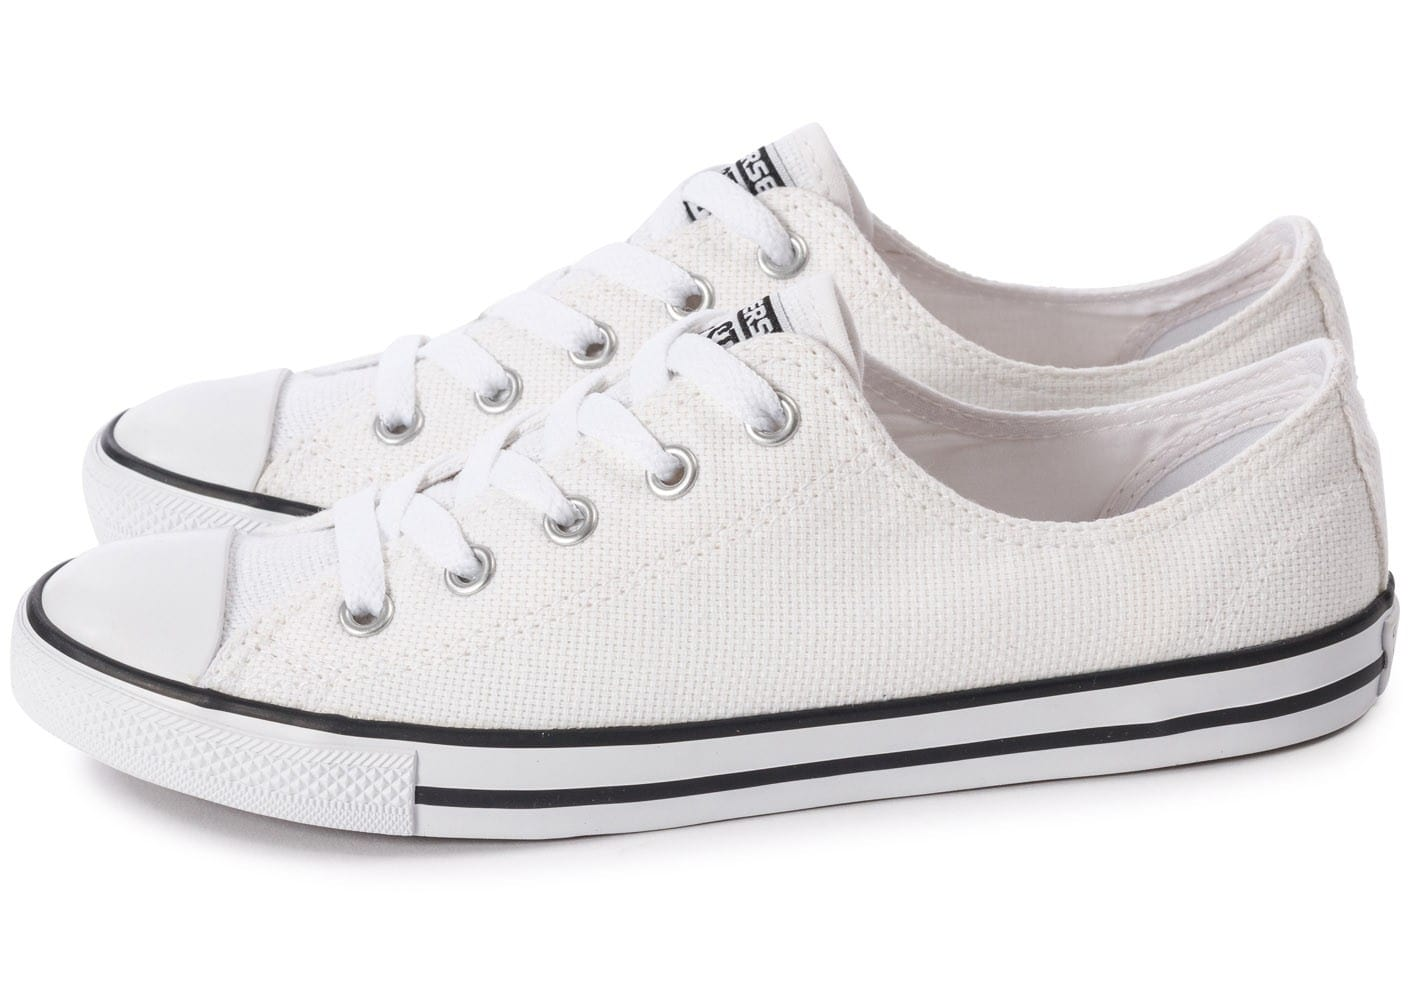 converse blanche femme dainty